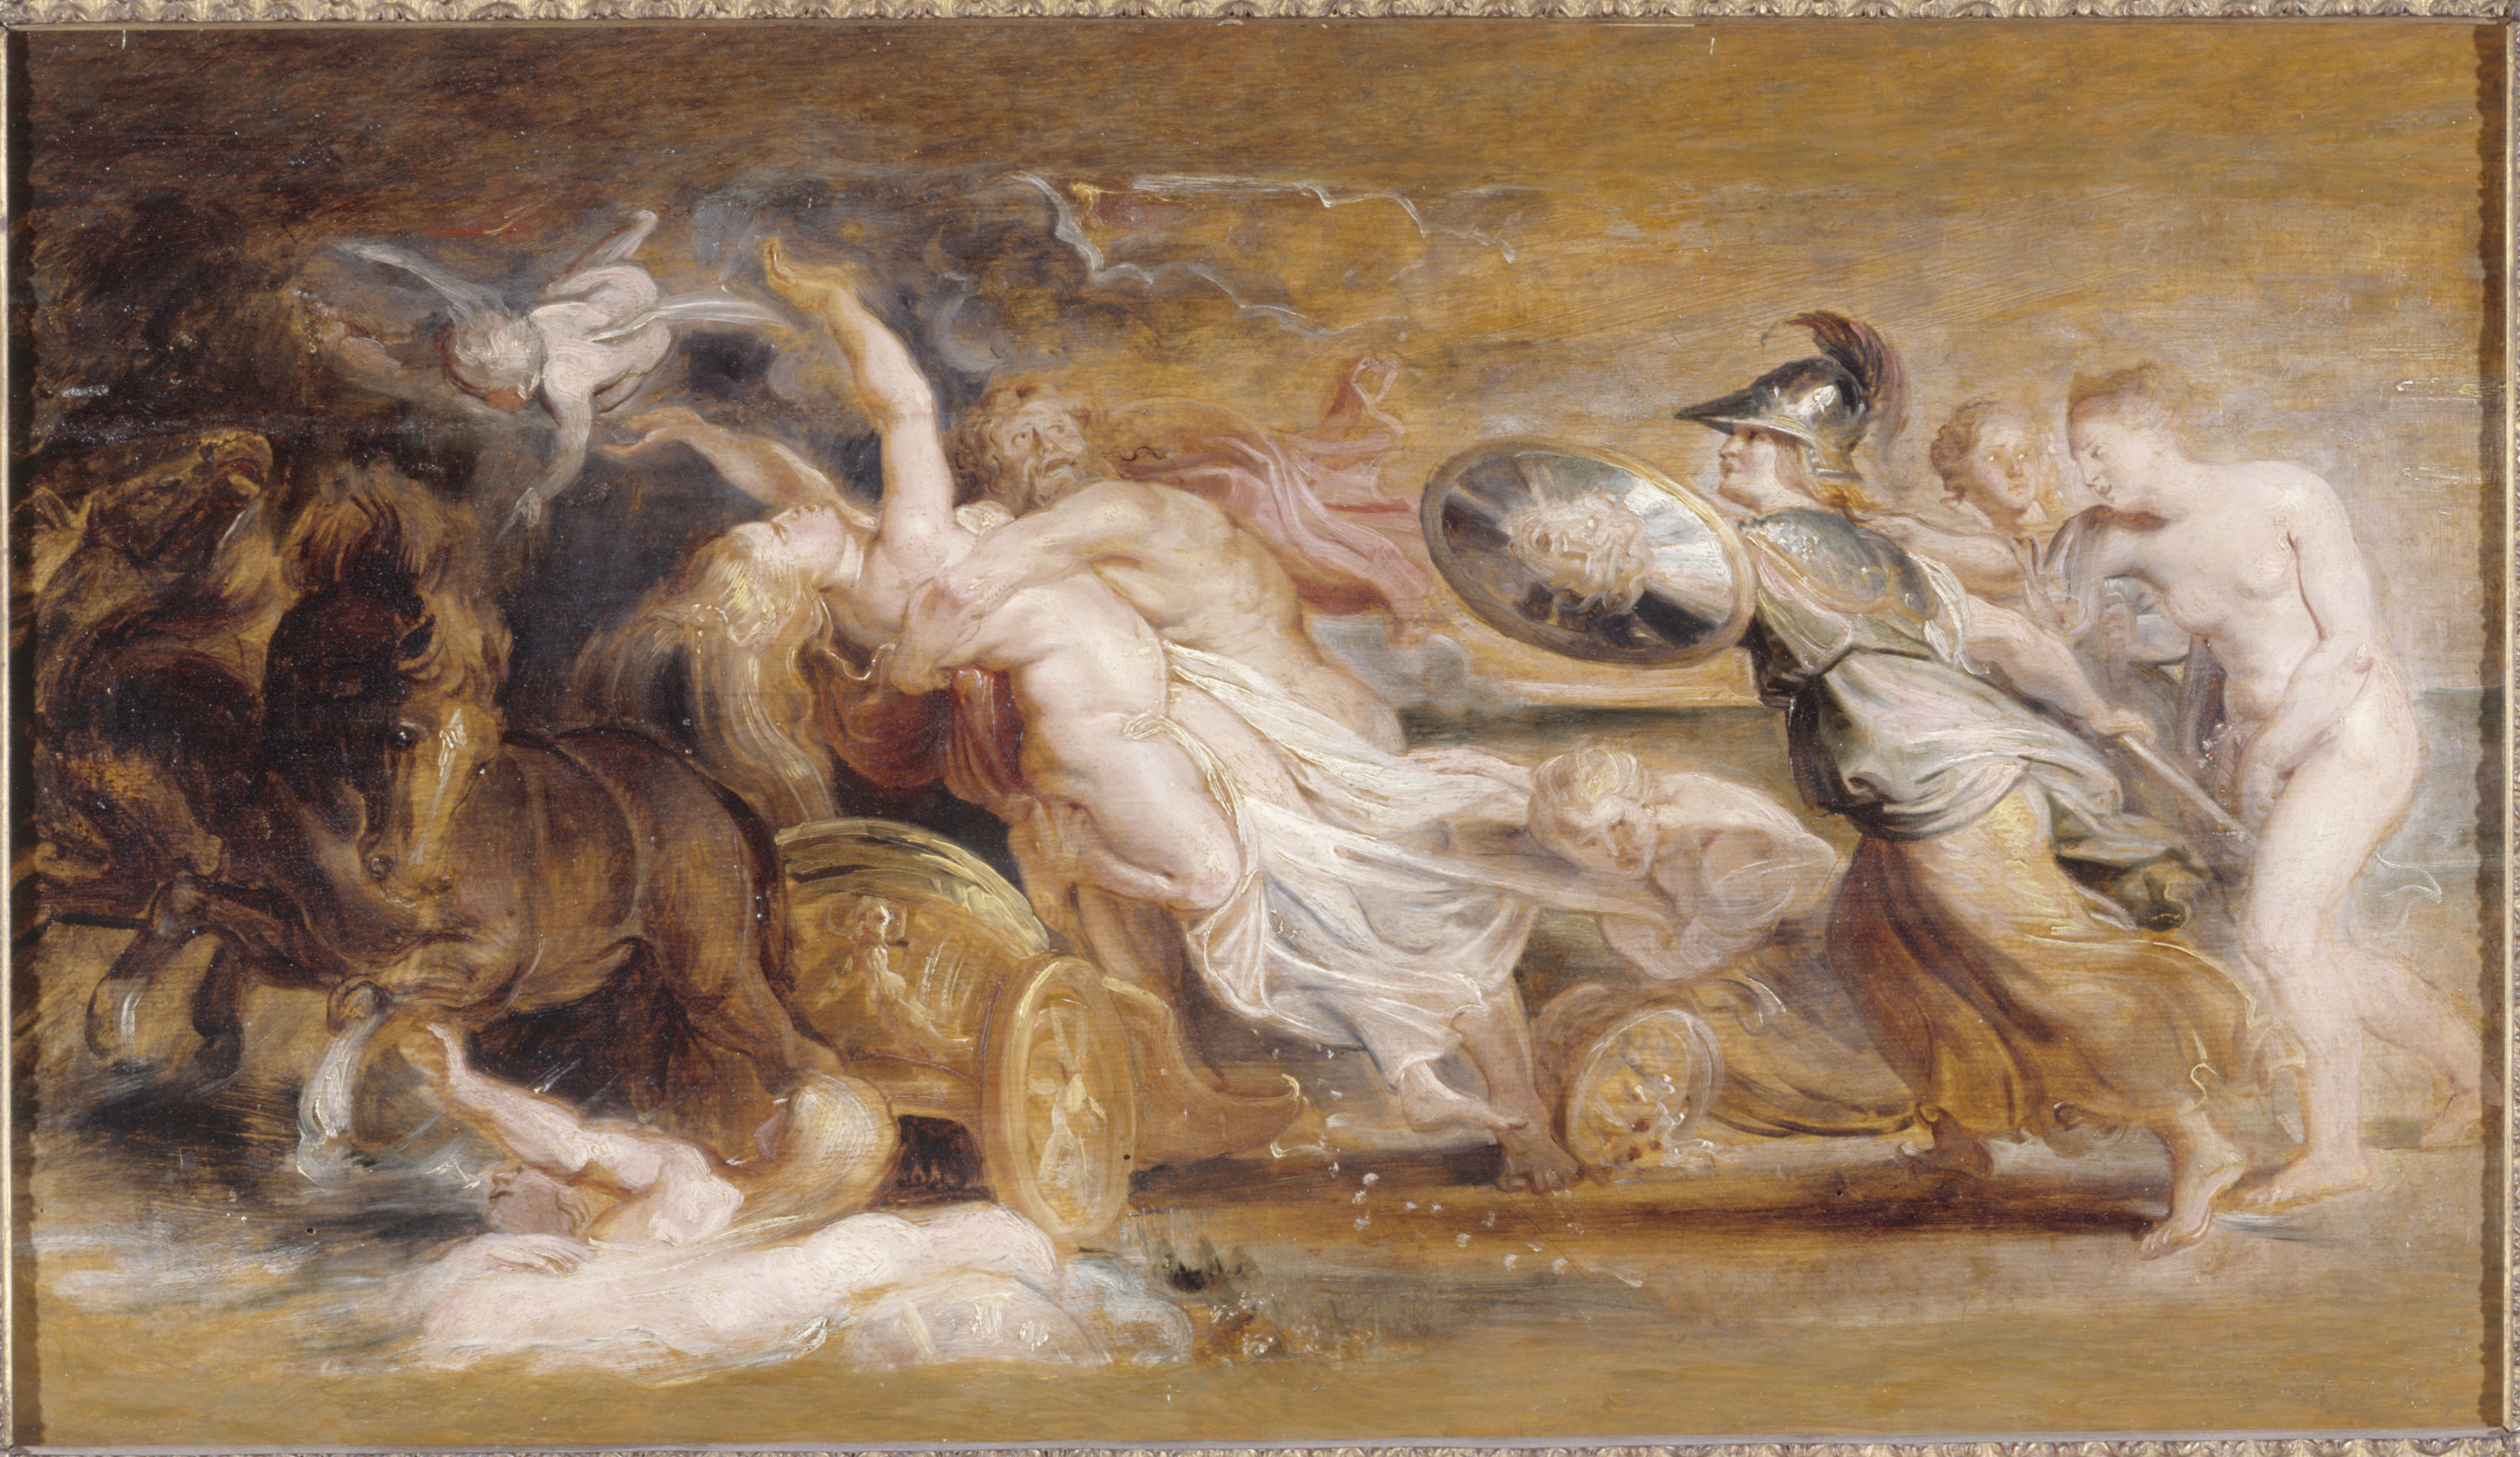 Rubens - The Abduction of Proserpina